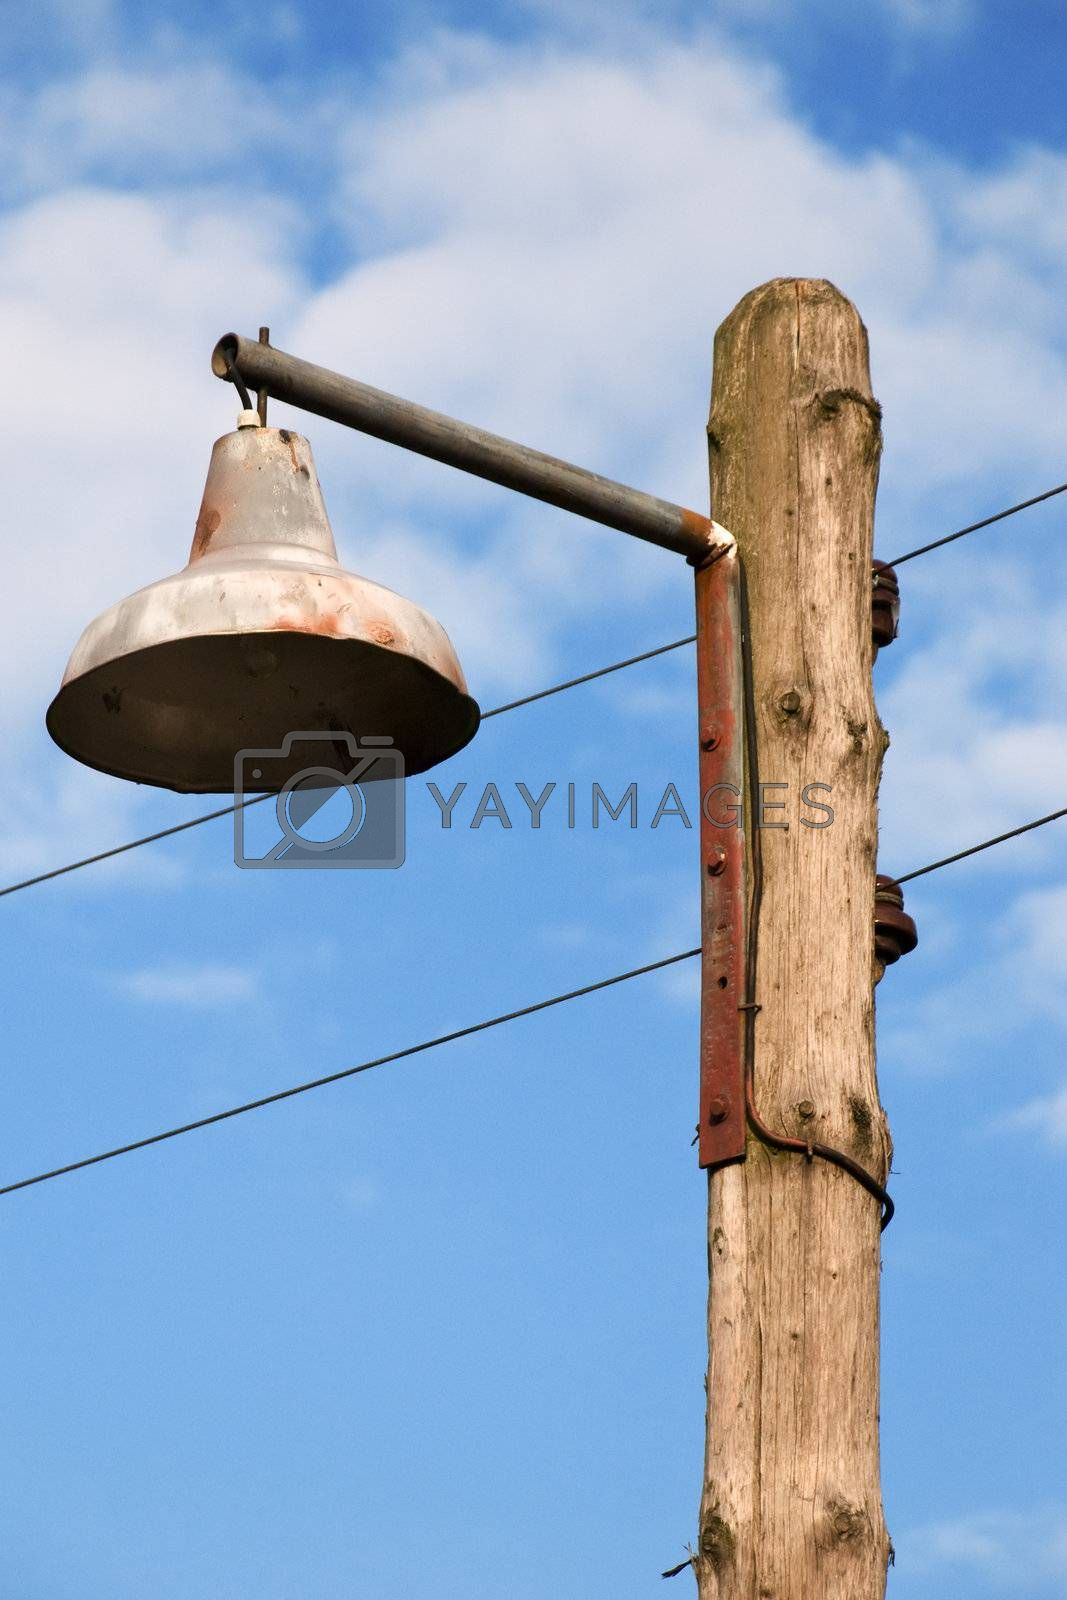 Old Lantern on a Wooden Pole Against a Blue Sky